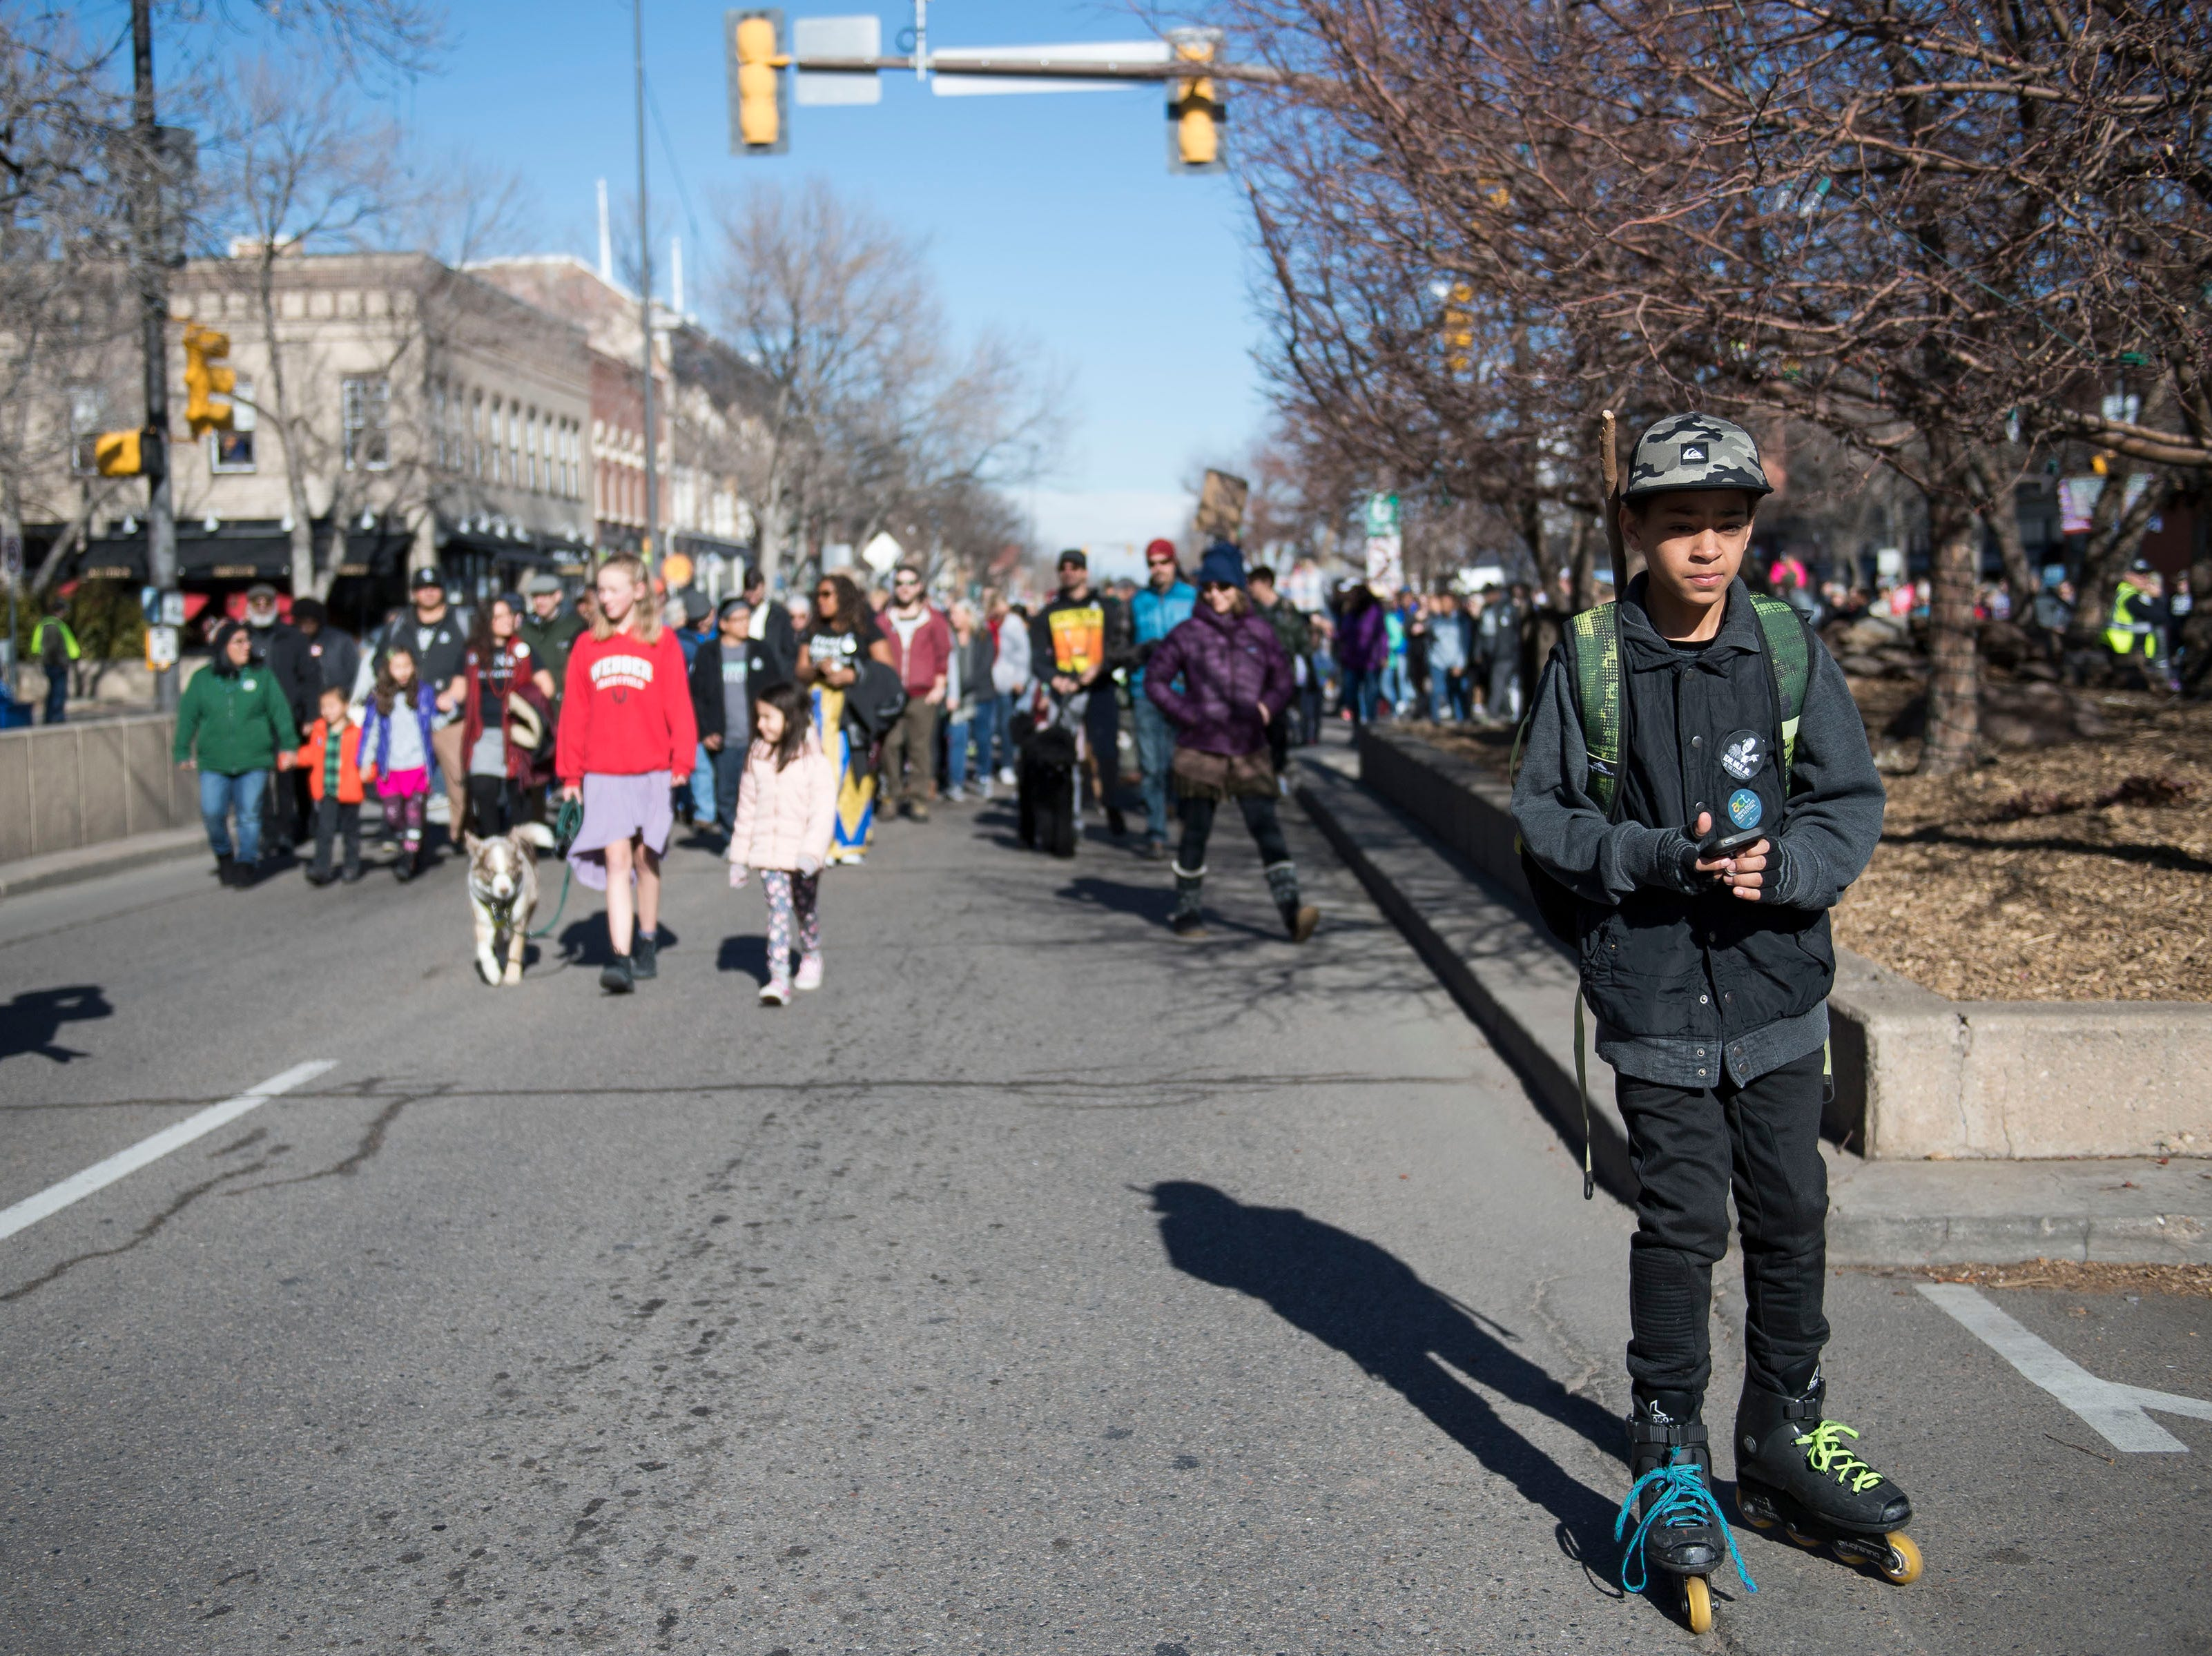 J.J. Tipton Lane, 12, rollerblades in front of the crowd while march participants head down South College Avenue during the Dr. Martin Luther King, Jr. March & Celebration on Monday, Jan. 21, 2019, in Fort Collins, Colo.